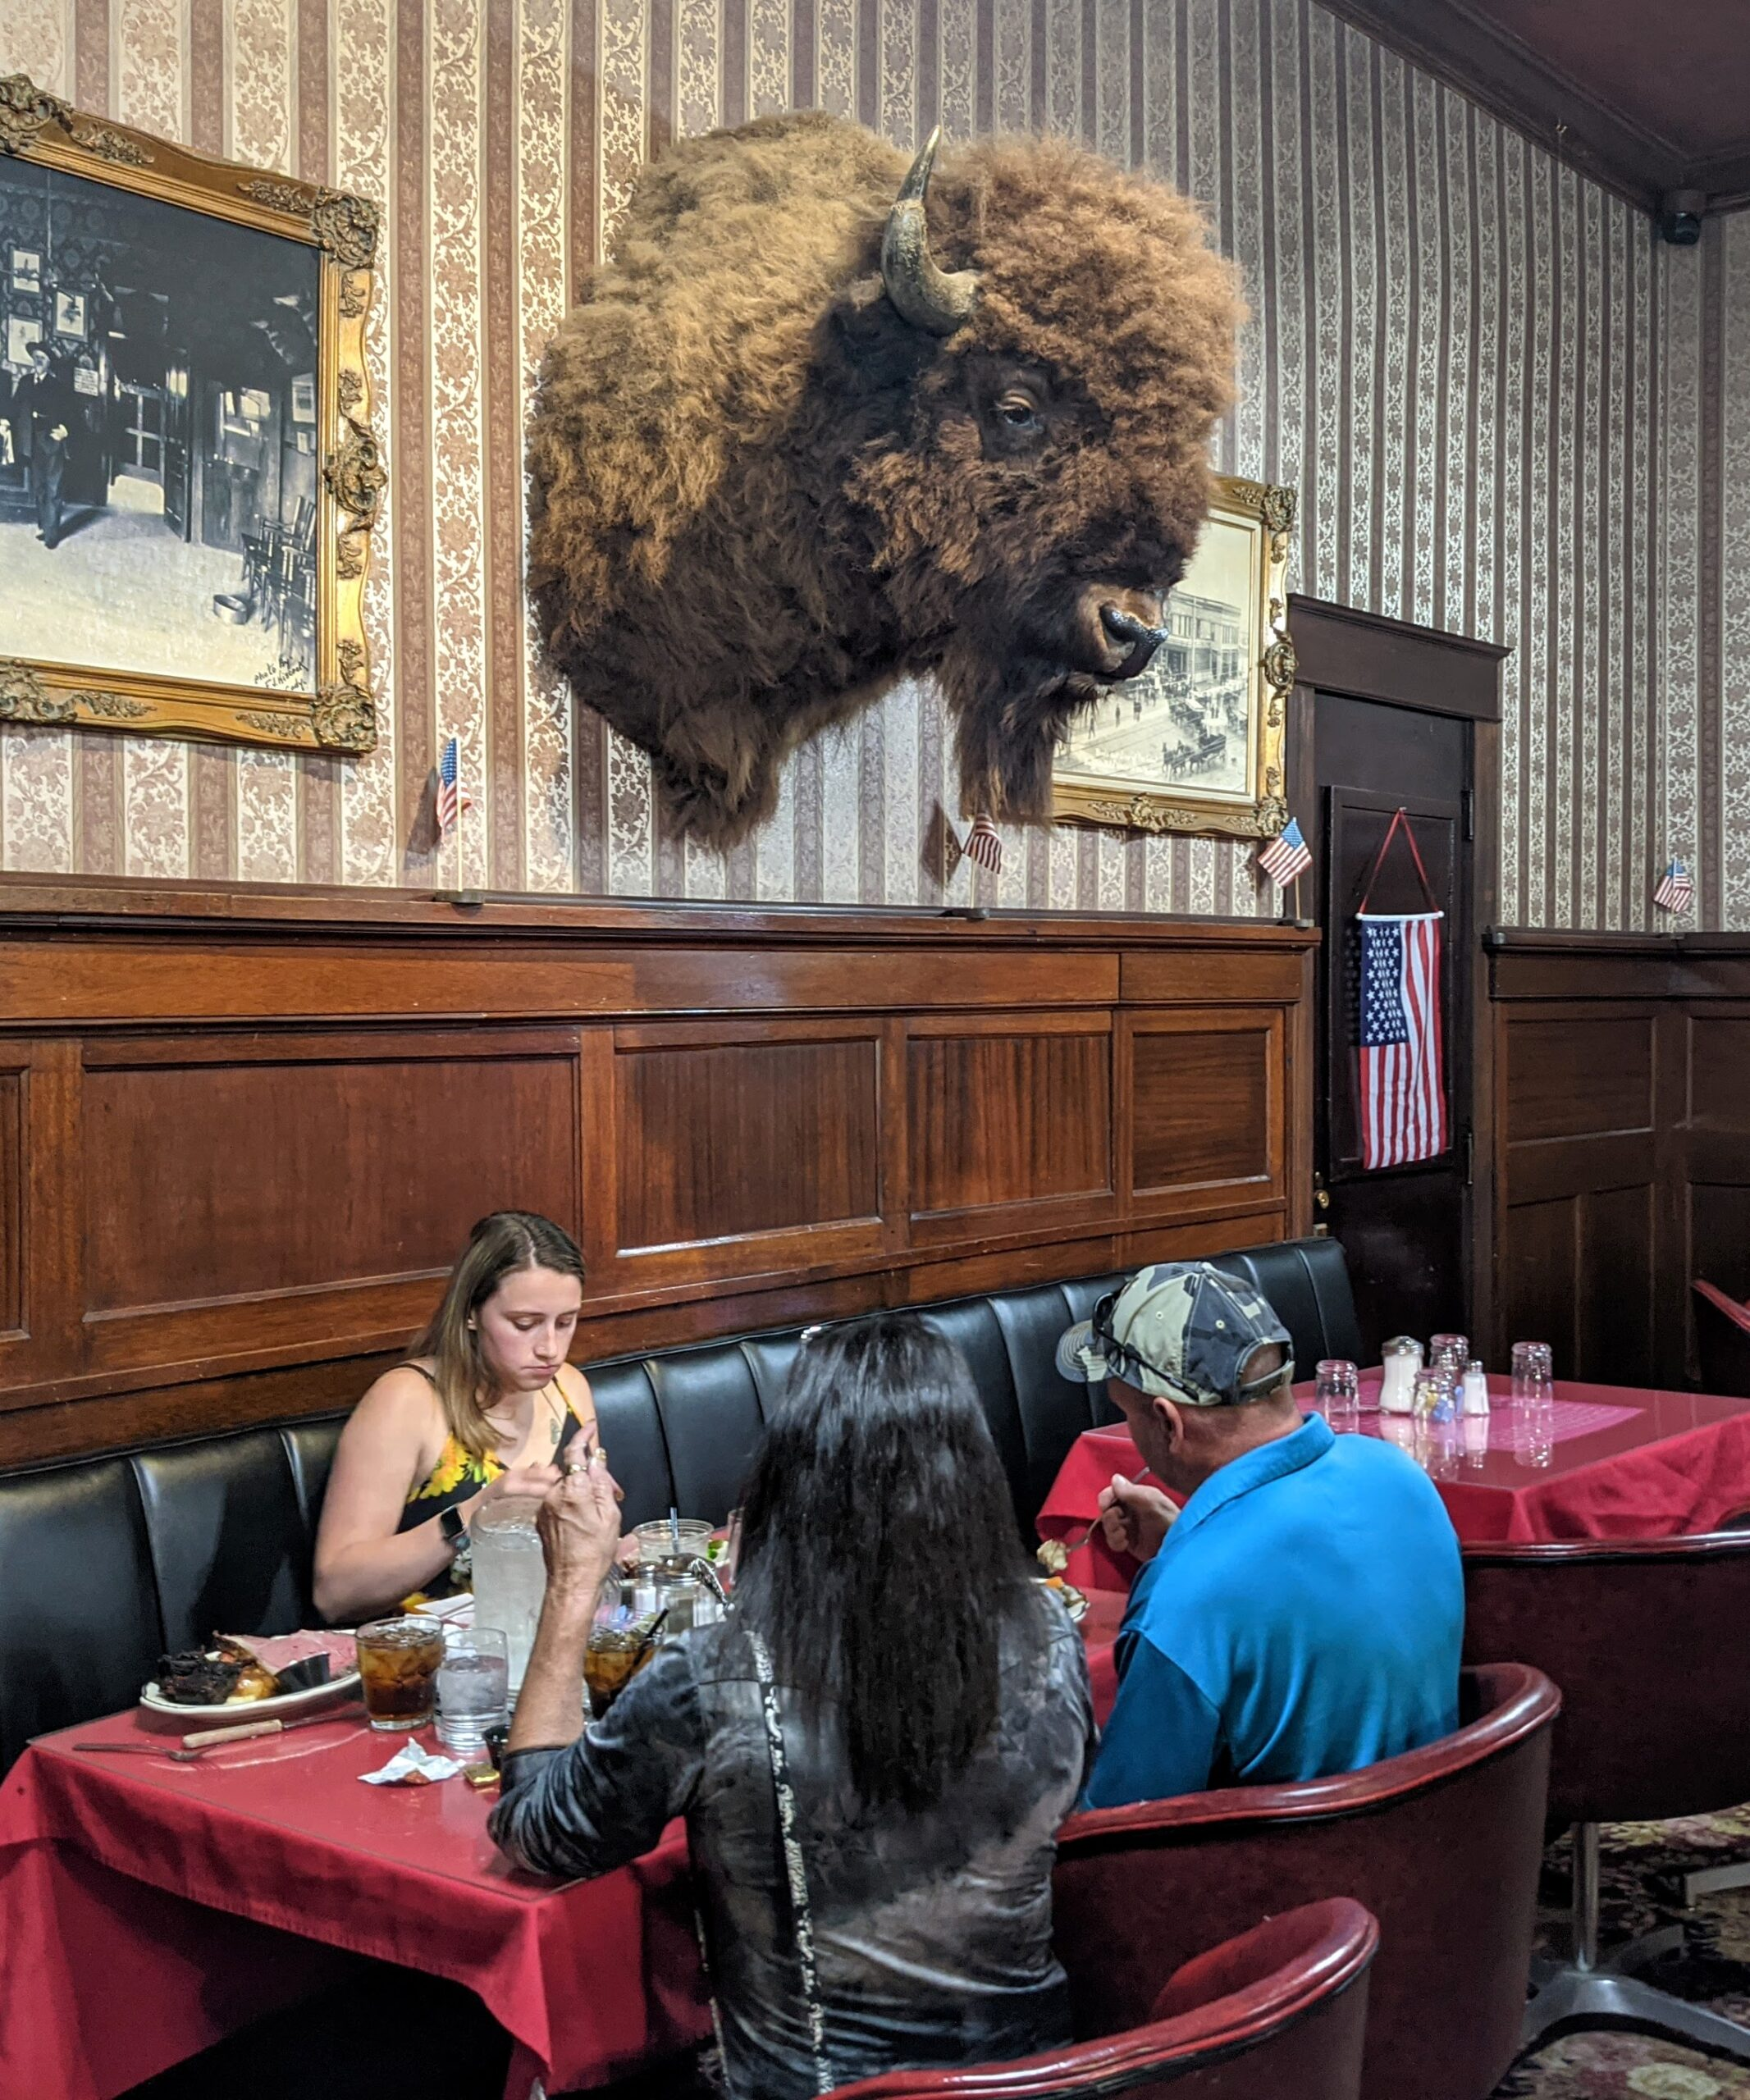 A bison head hangs over a table of people eating in The Irma Hotel in Cody Wyoming